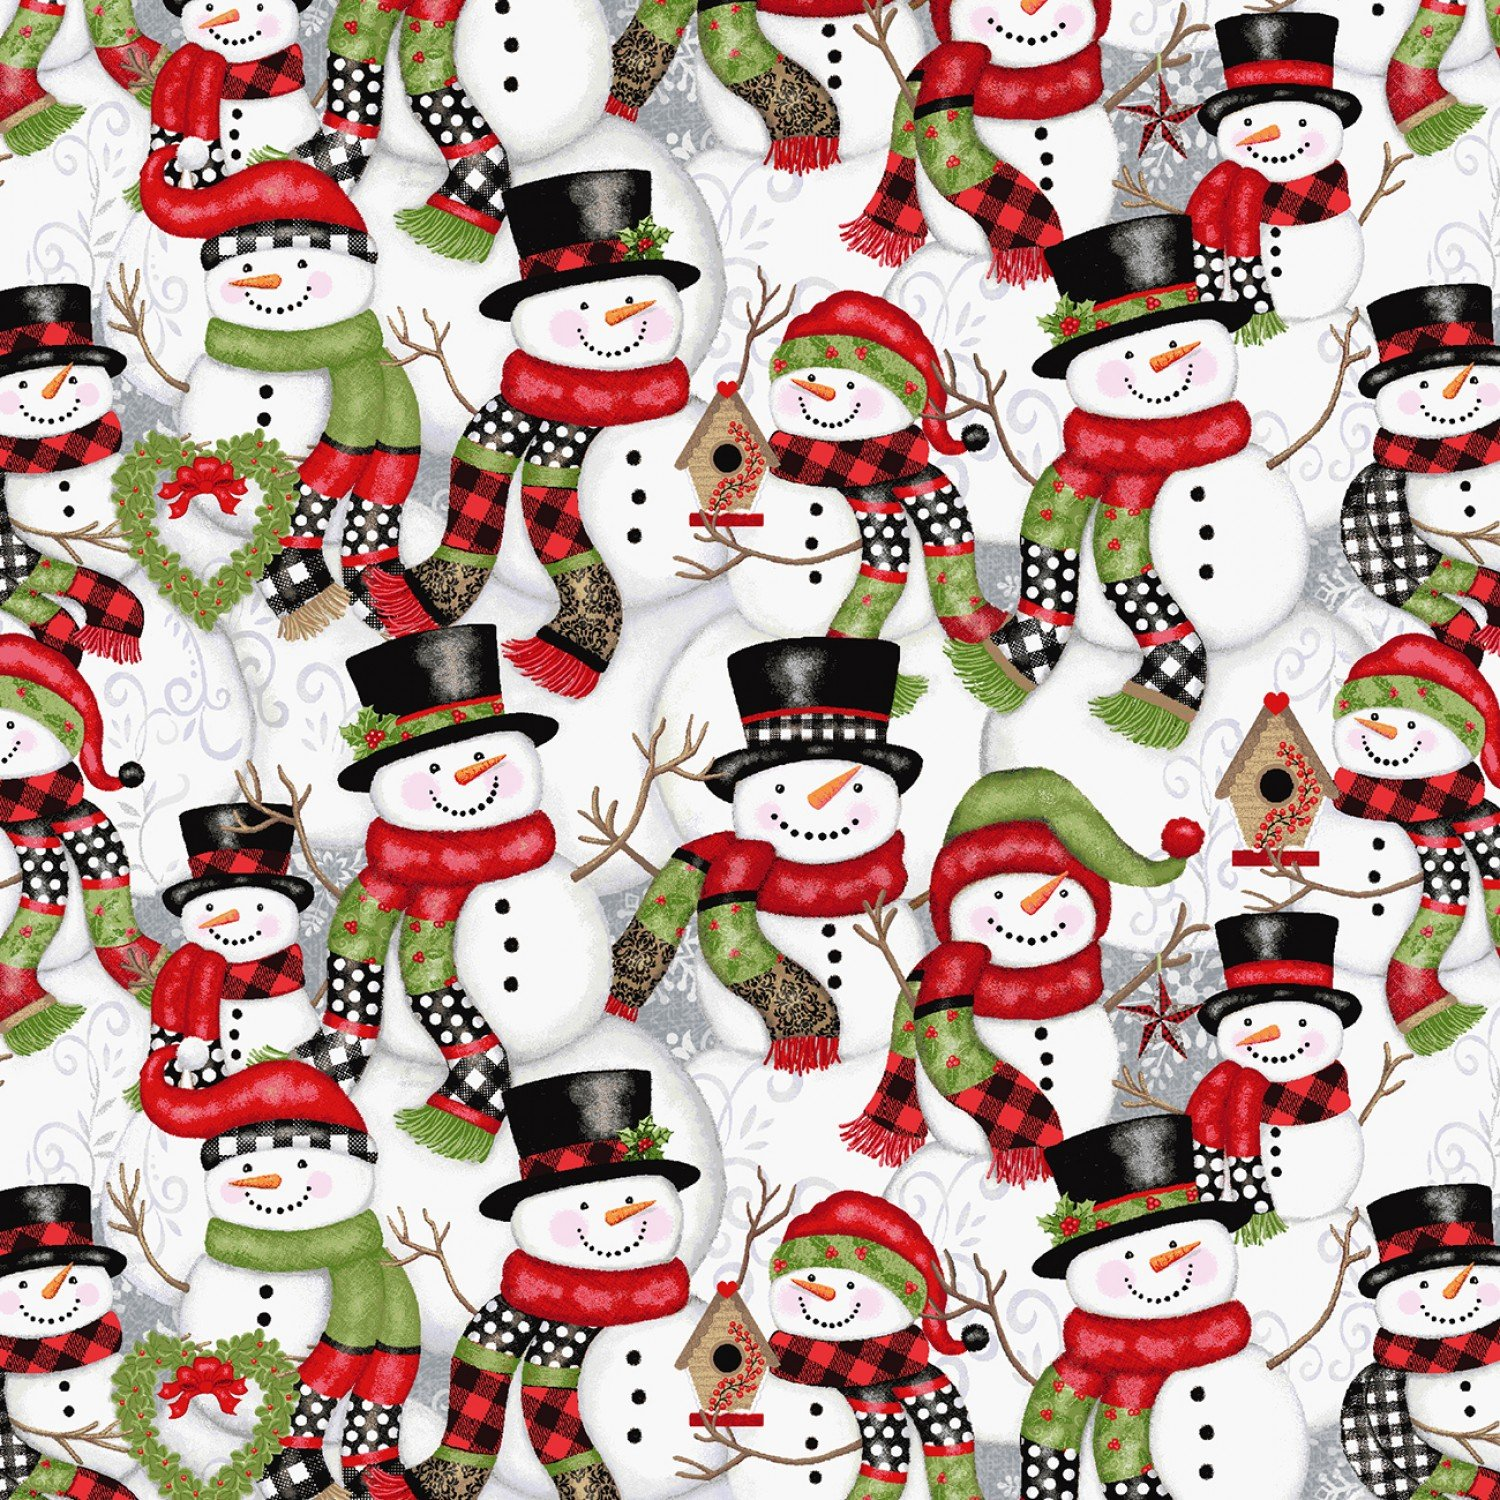 SE-Snow Place Like Home 5162-98 Multi - Stacked Snowmen